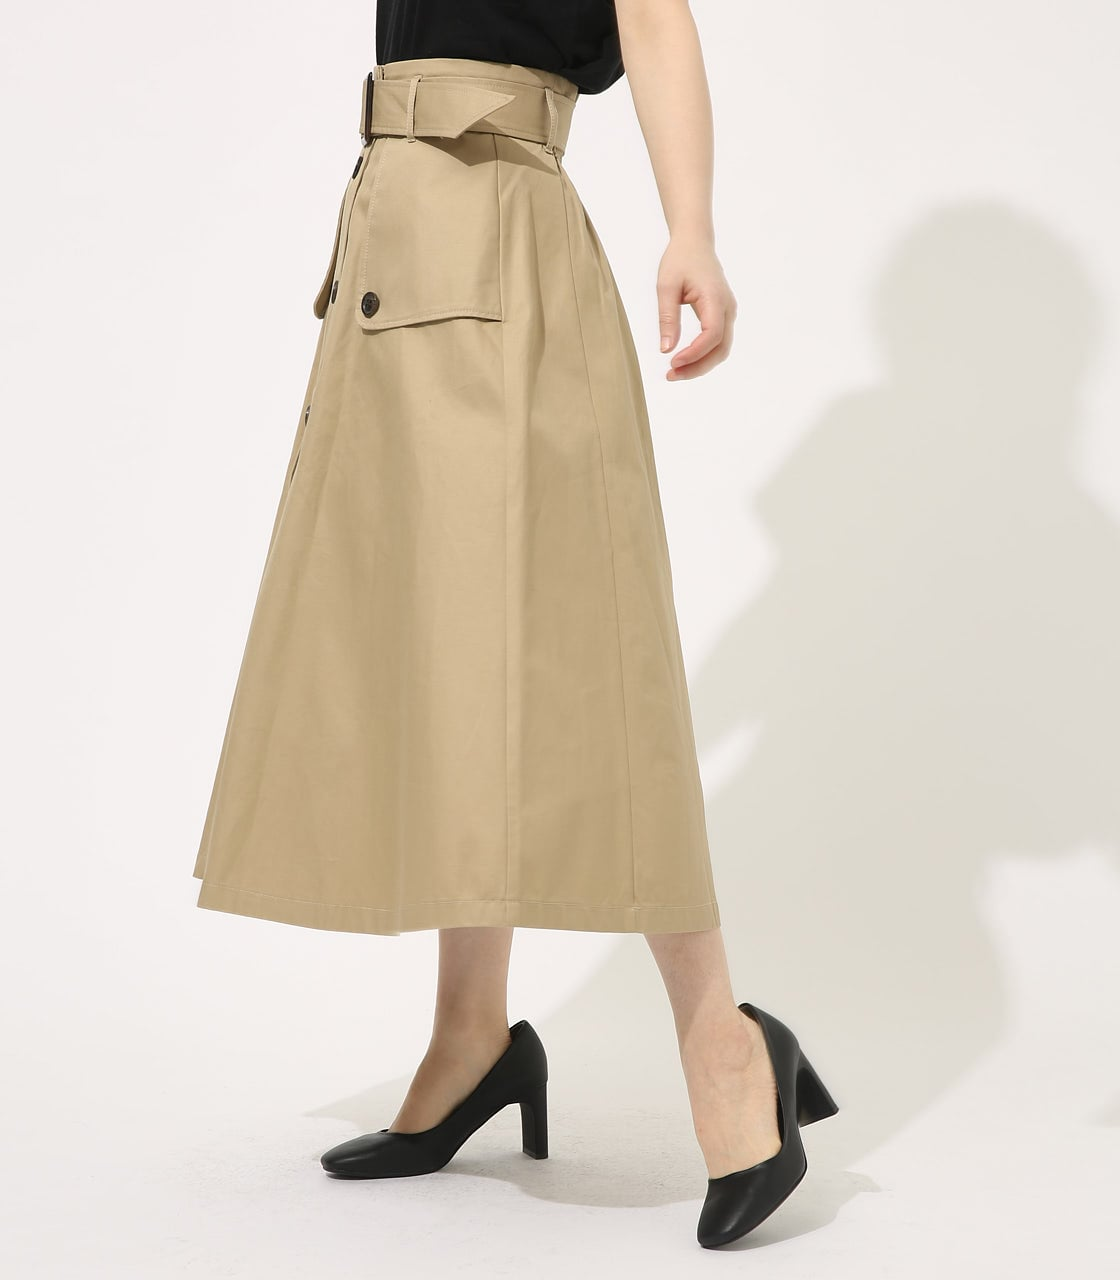 【AZUL BY MOUSSY】TRENCH FLARE SKIRT 詳細画像 BEG 2